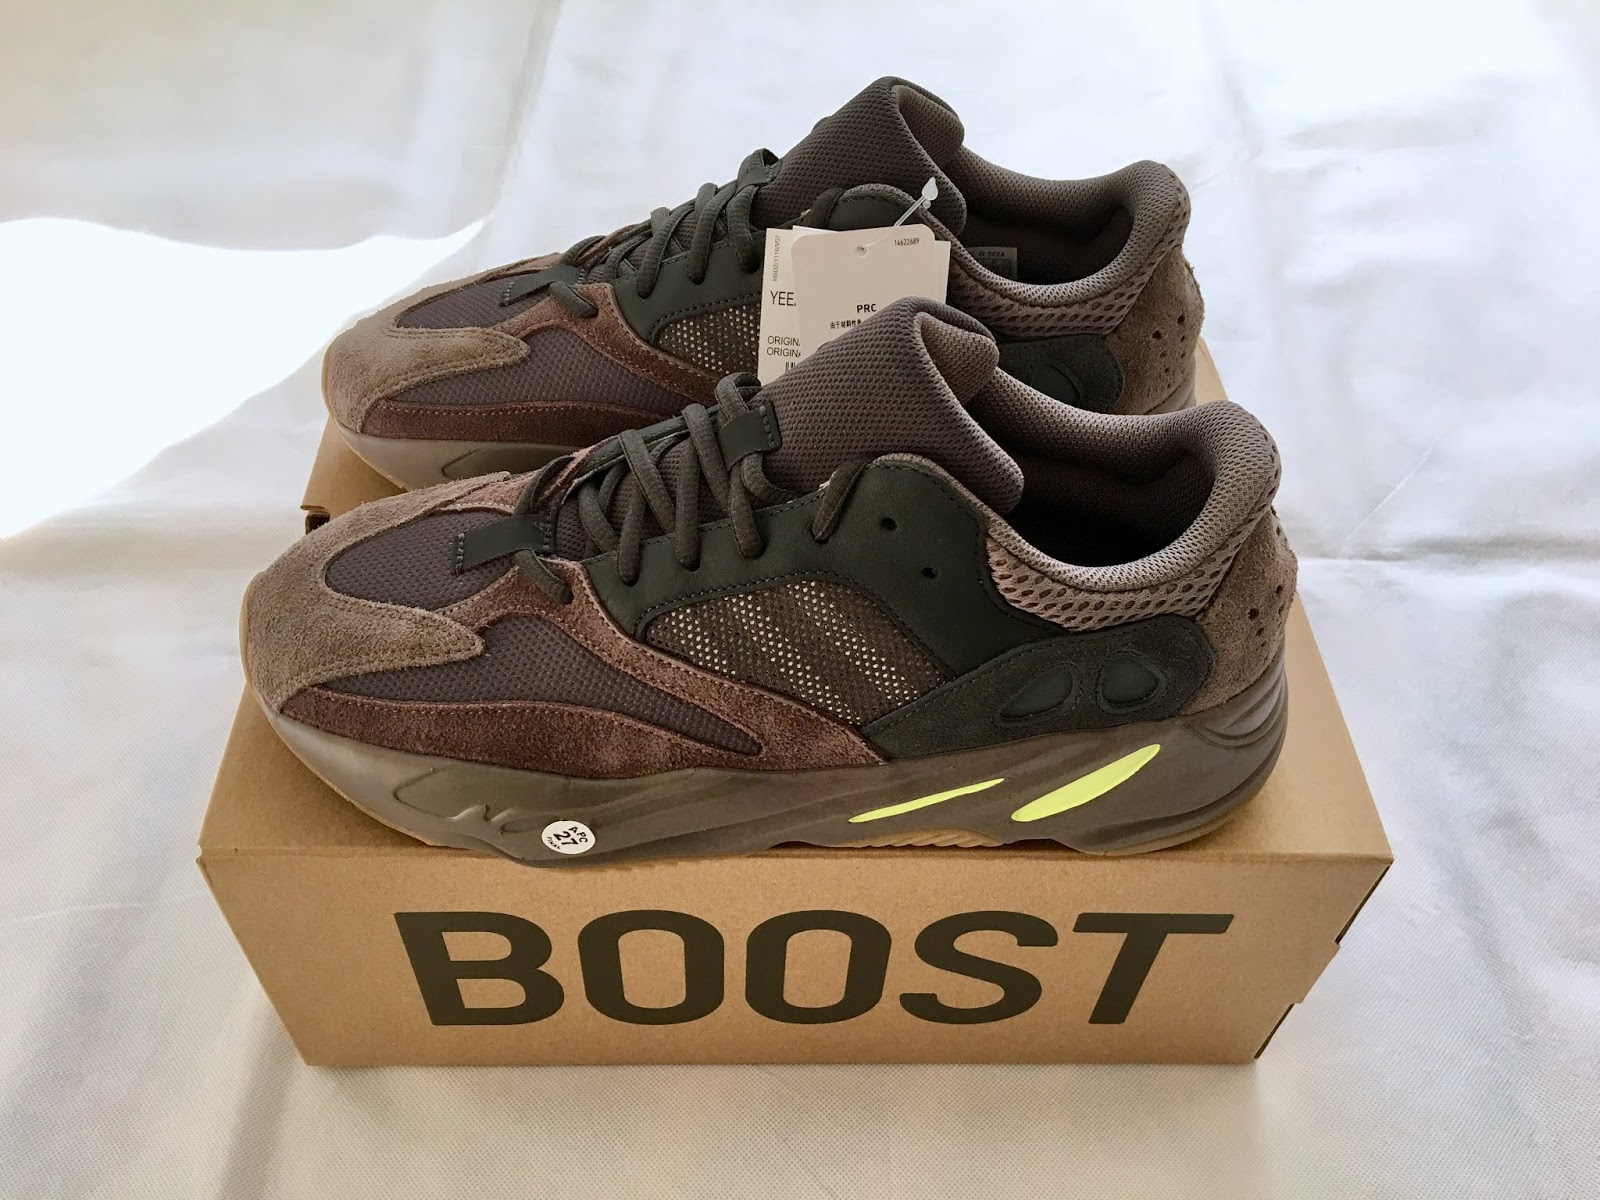 5f3652310b3 Adidas Yeezy Boost 700 Mauve Sneakers